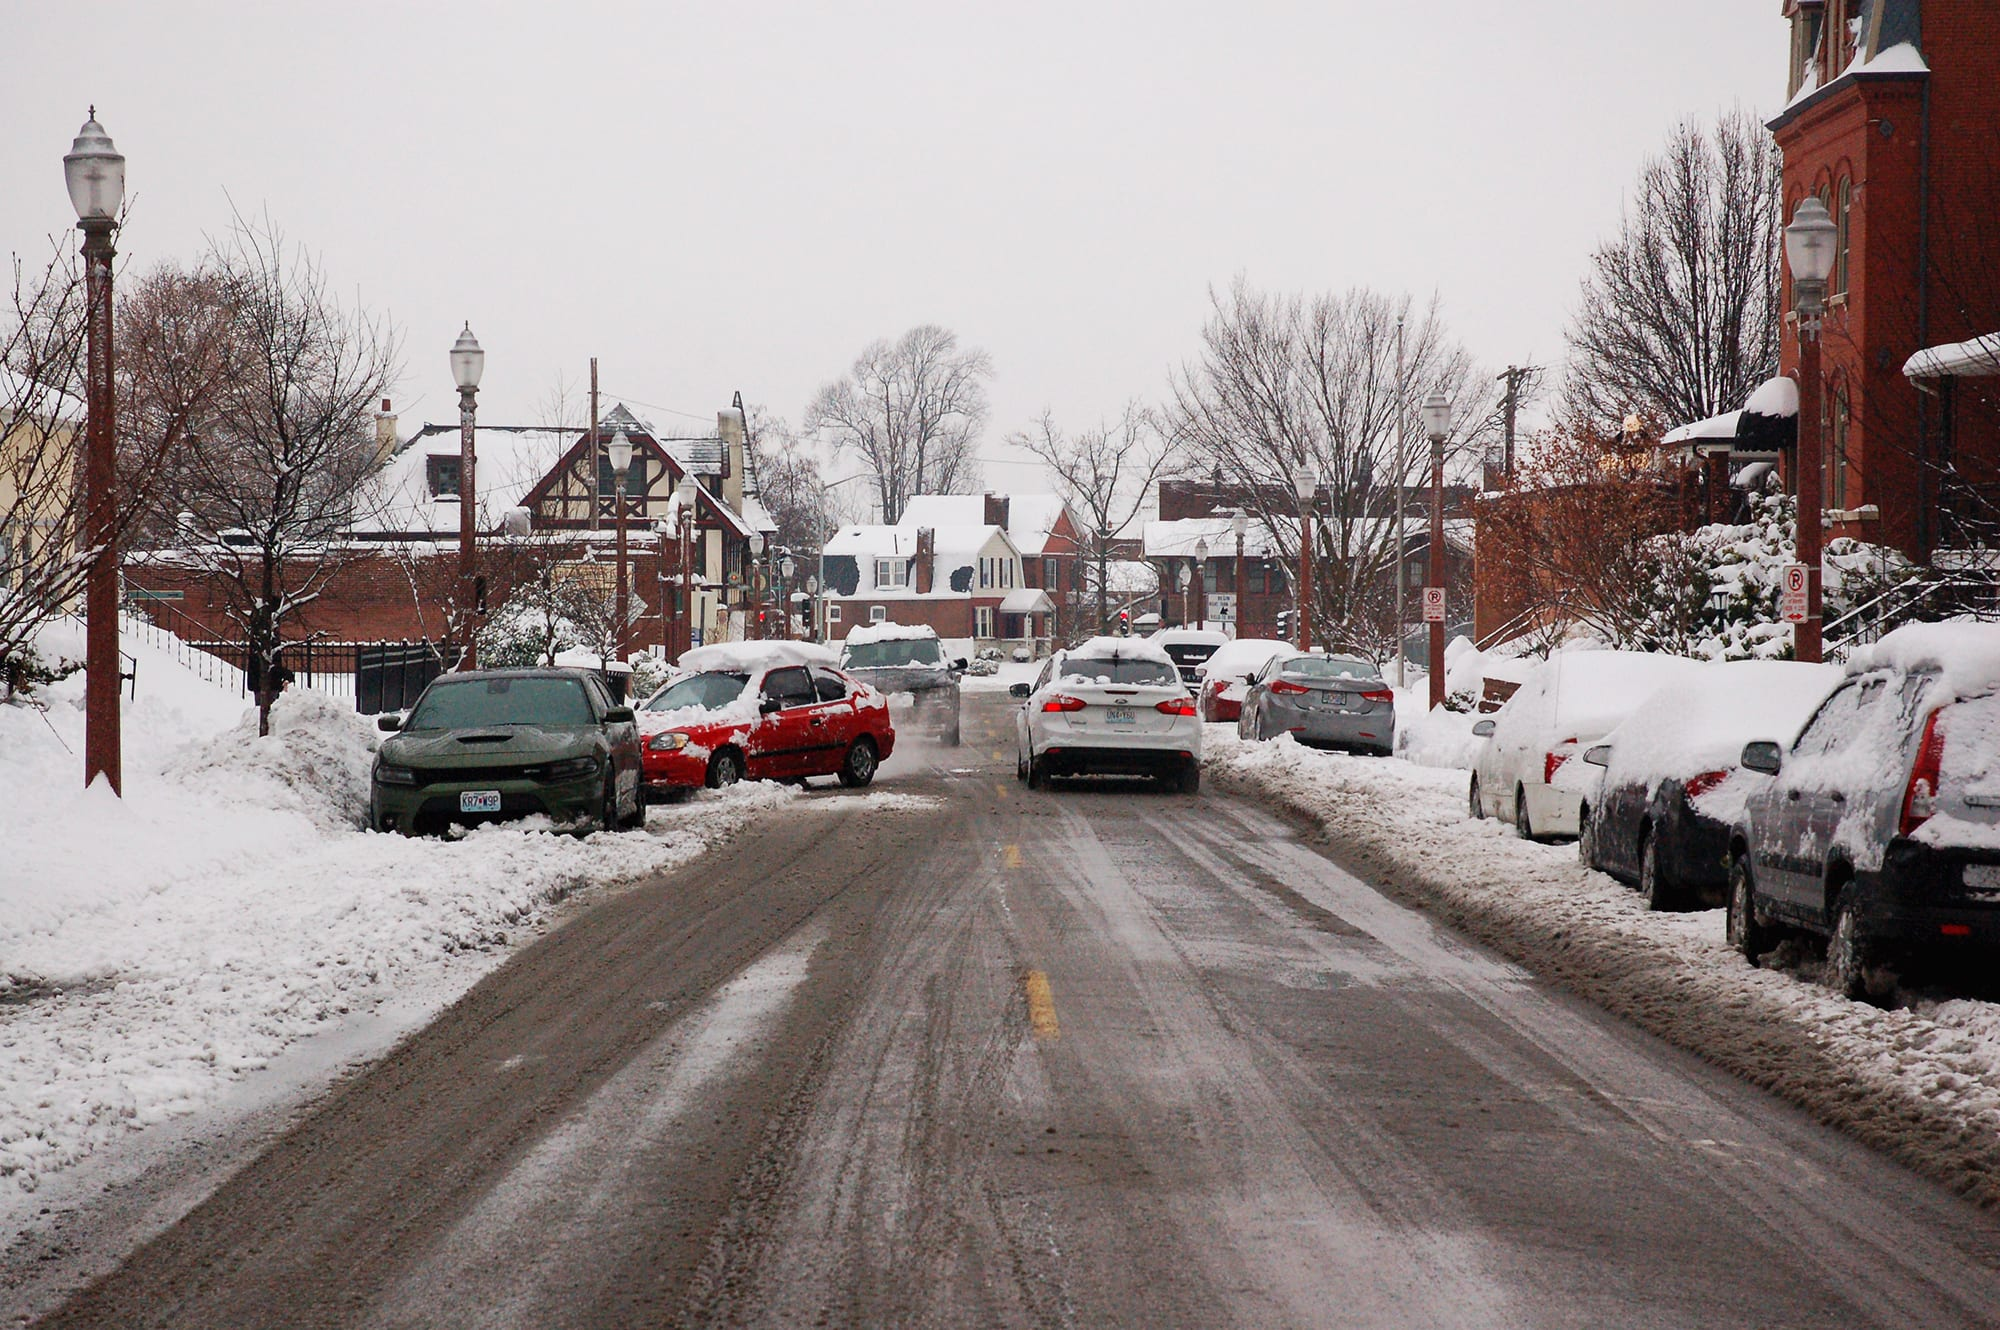 Meramec Street in the snow.